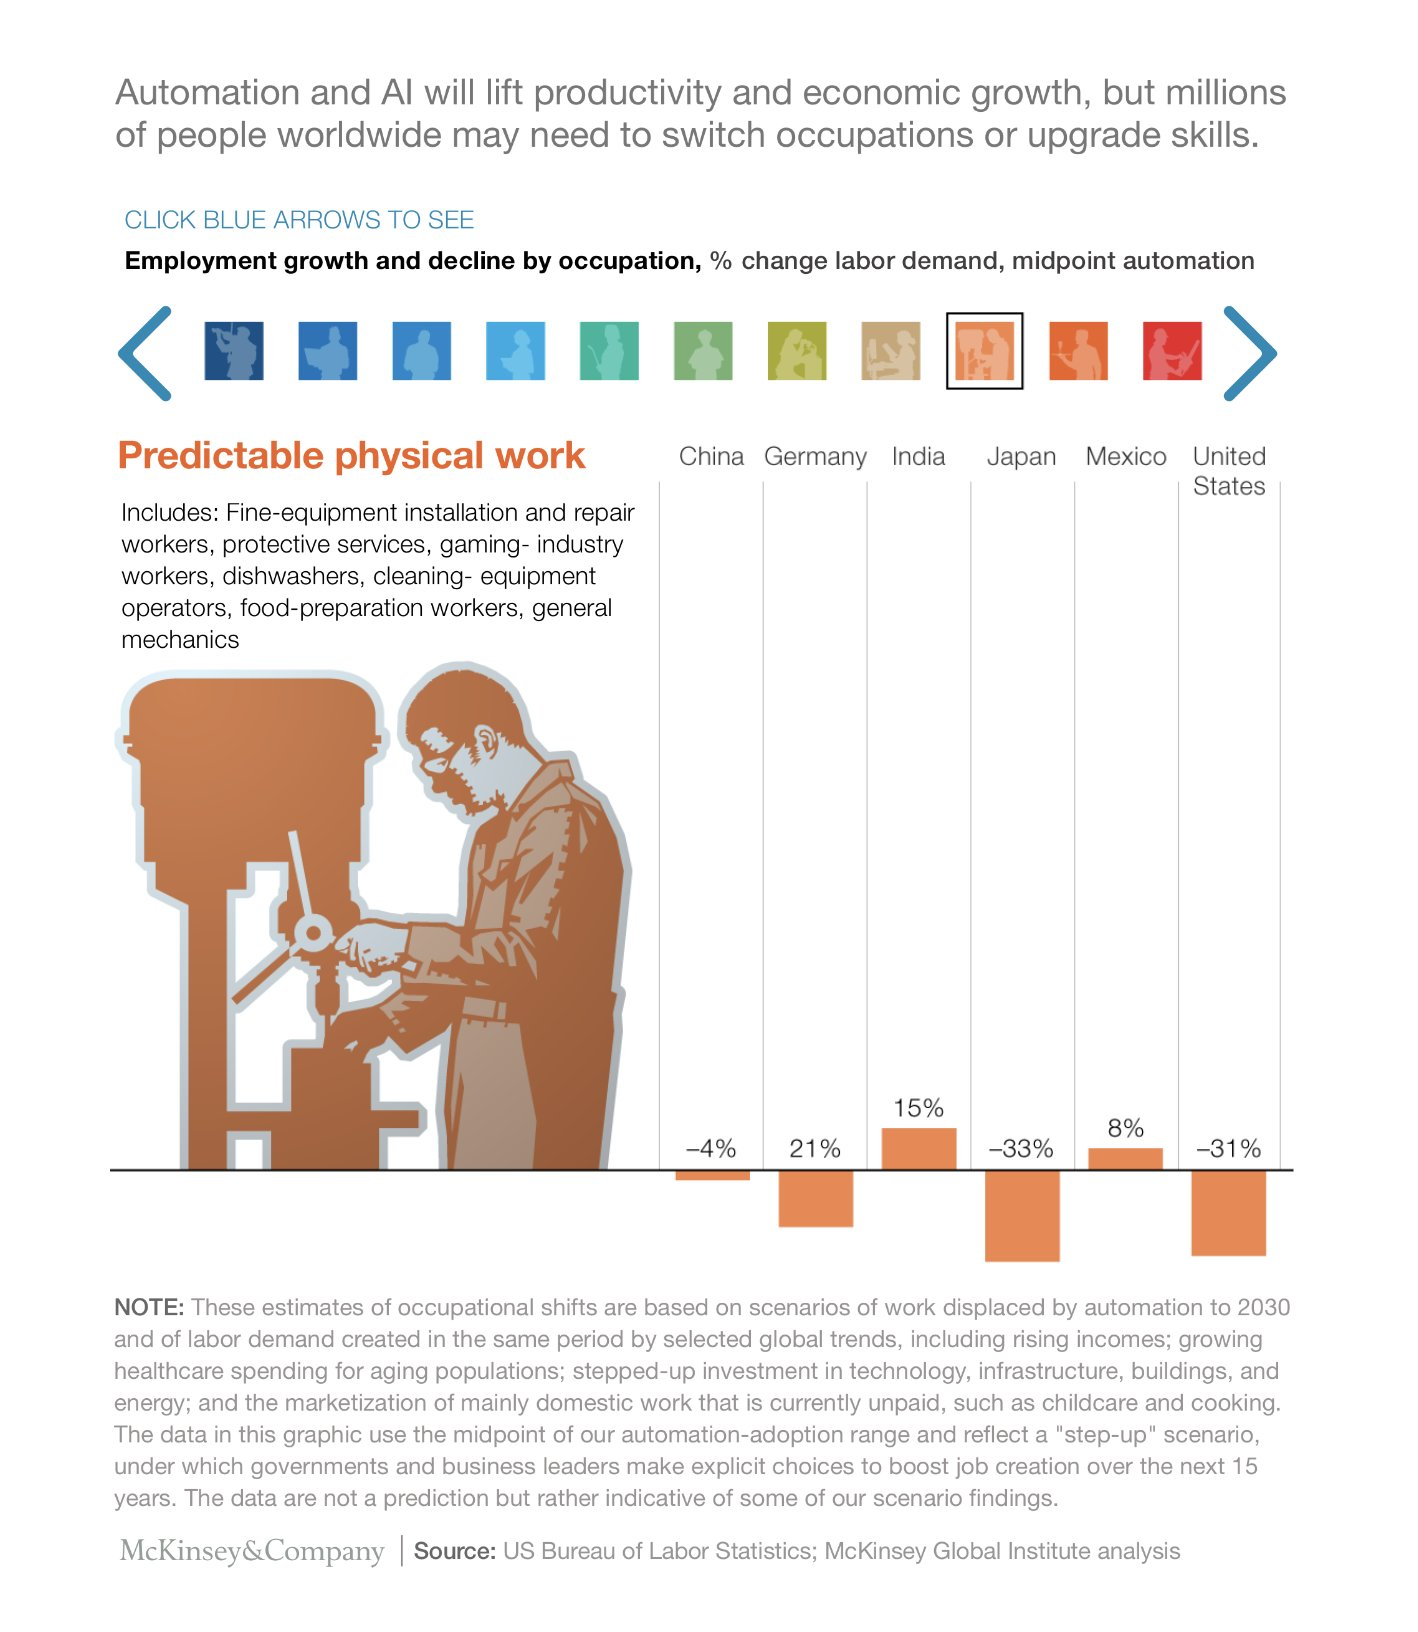 Automation and AI will lift productivity and economic growth, but millions of people worldwide may need to switch occupations or upgrade skills-predictable phisical work category